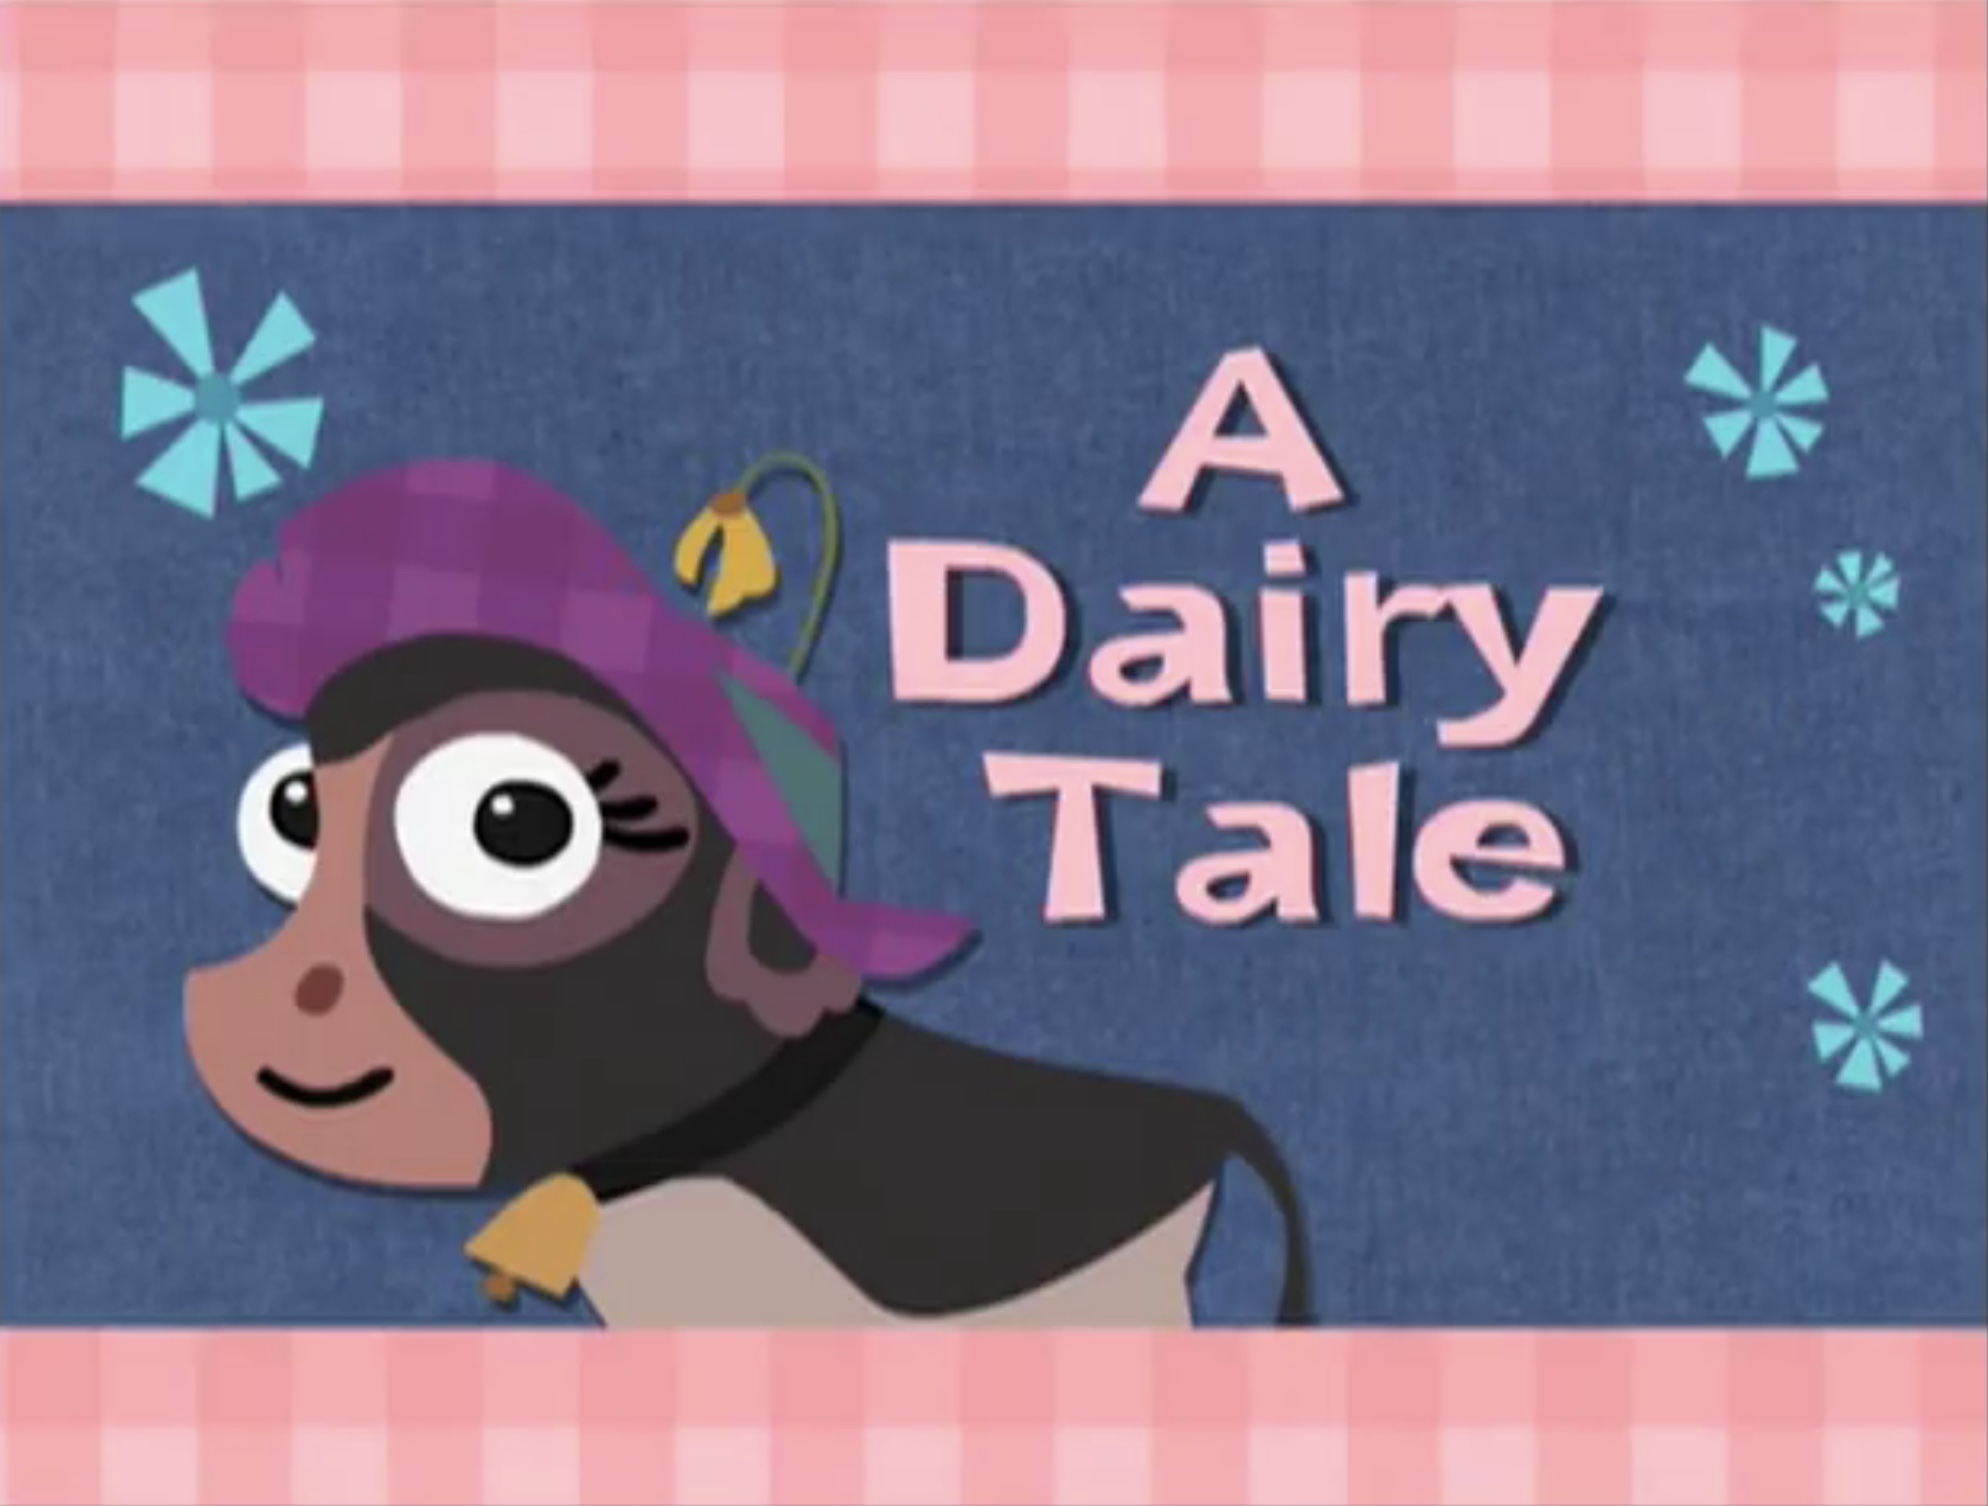 A Dairy Tale: The Three Little Pigs